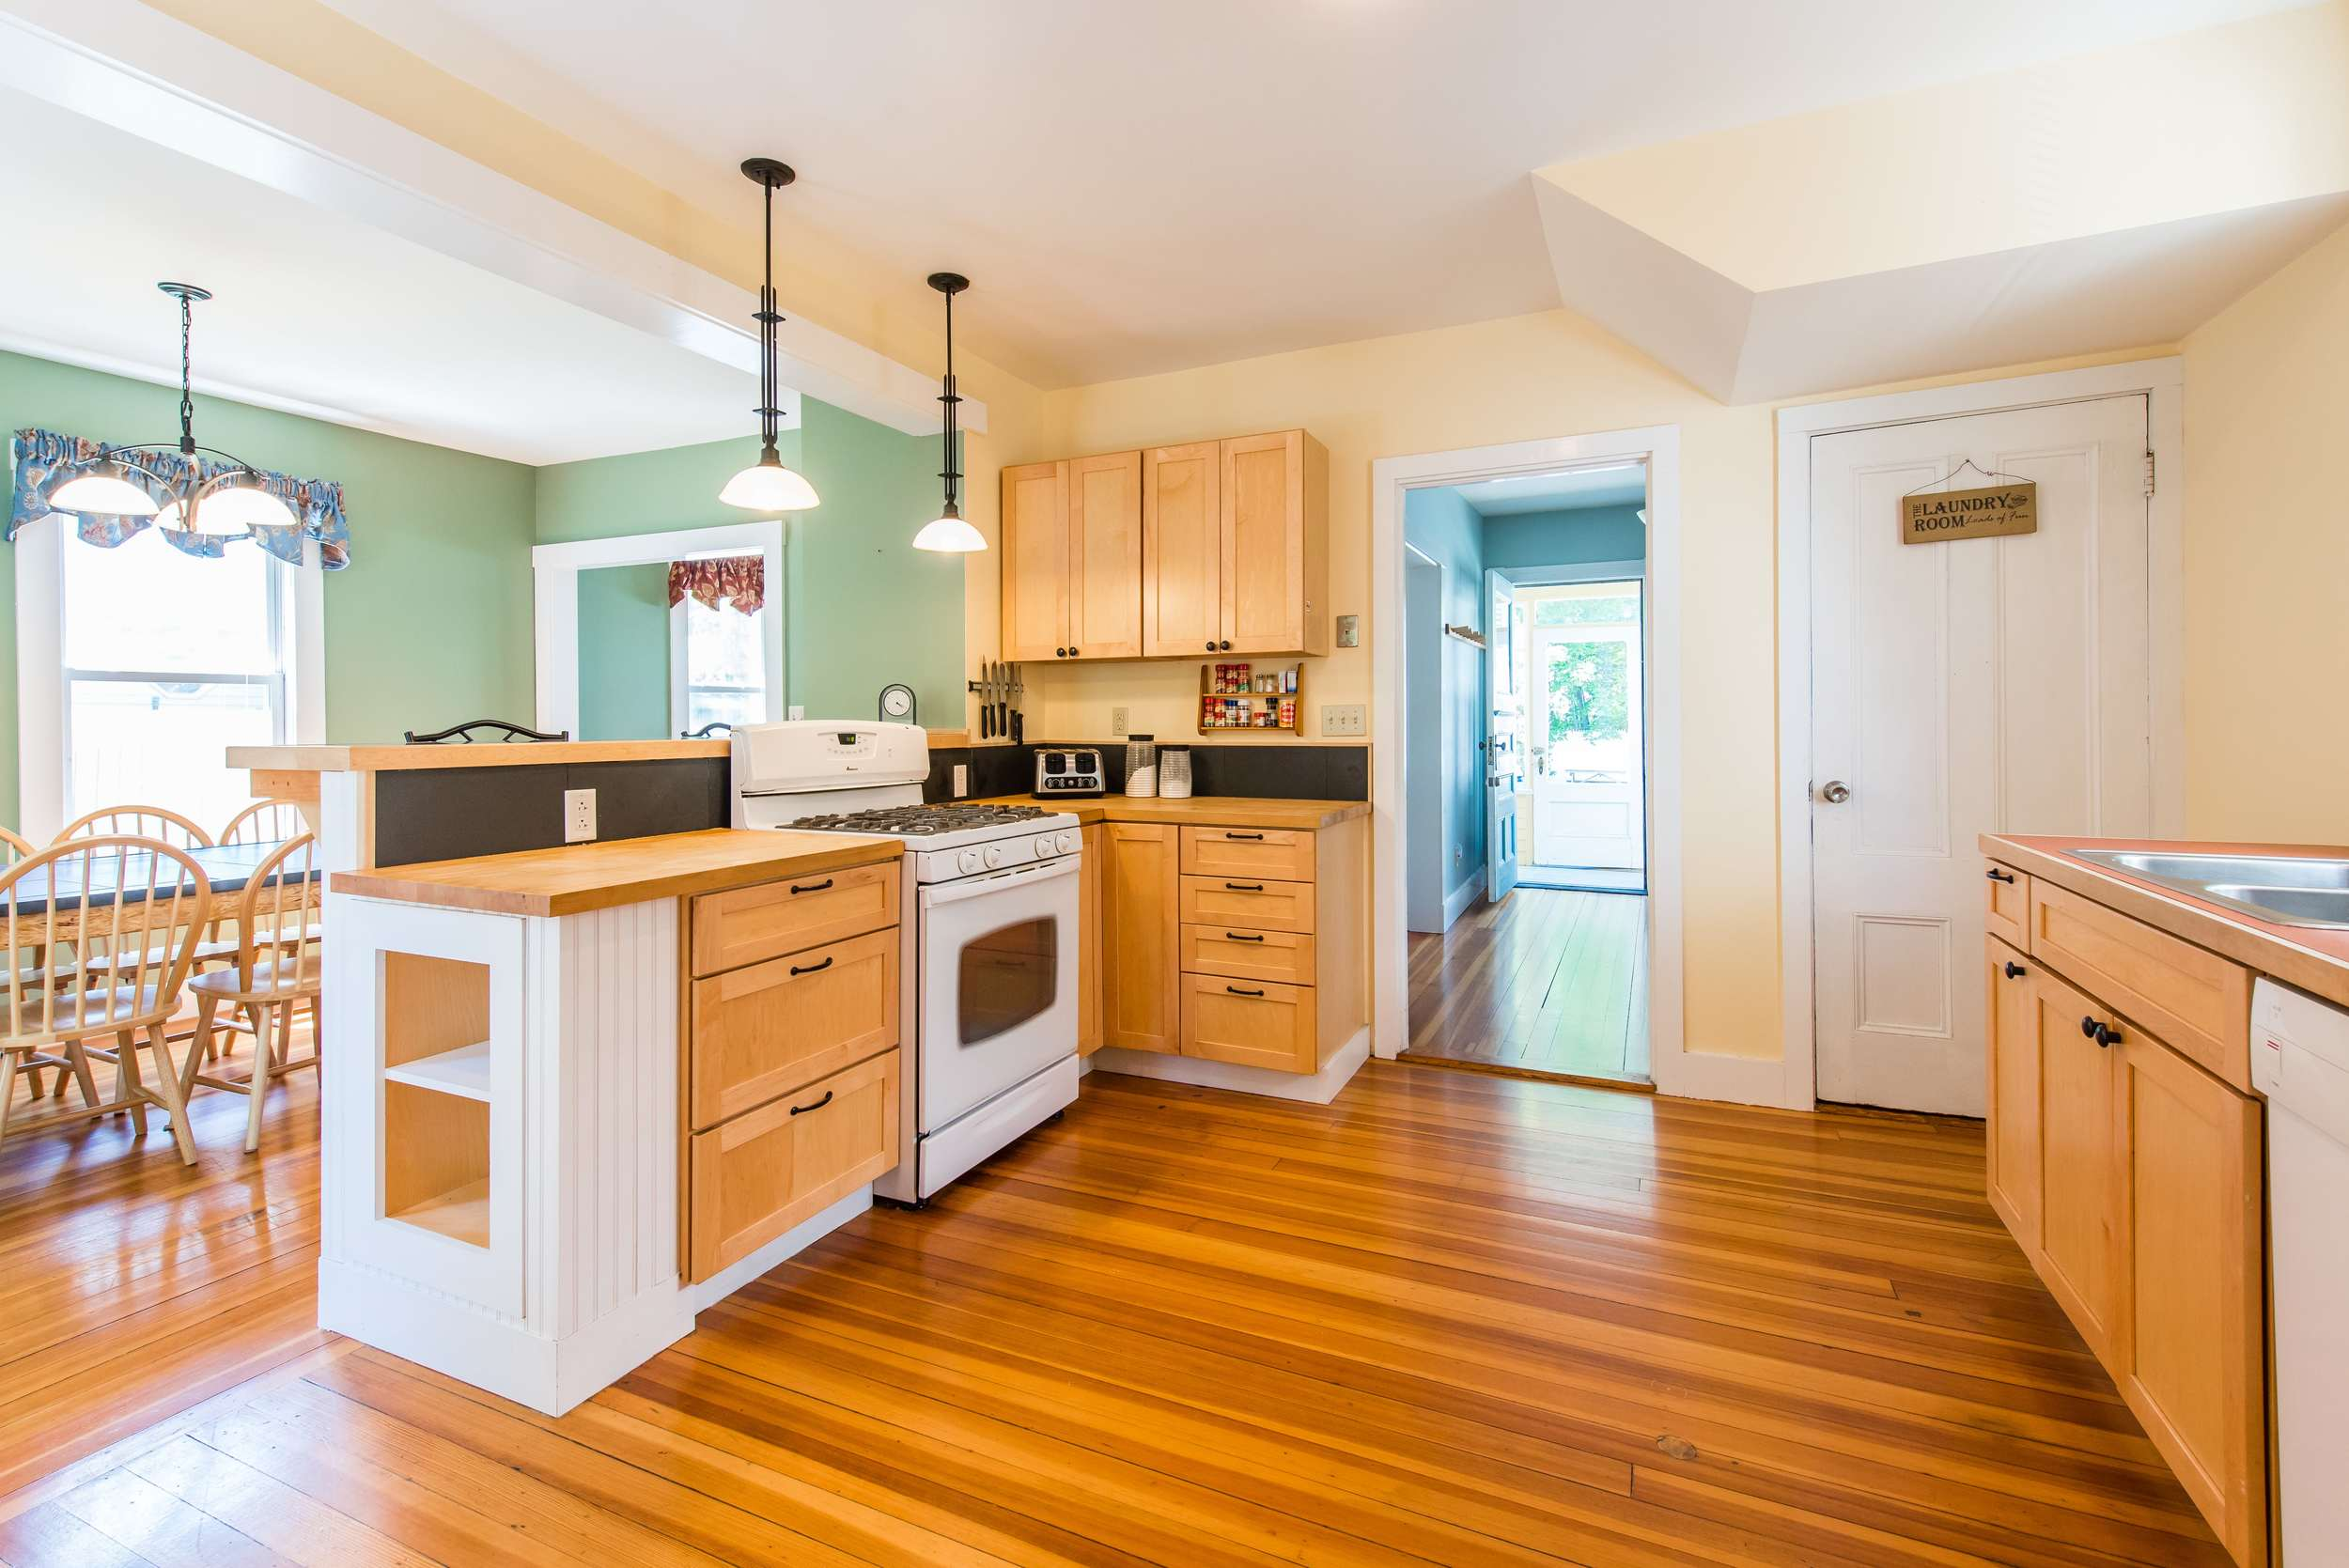 Large fully equipped kitchen with gas stove/oven.